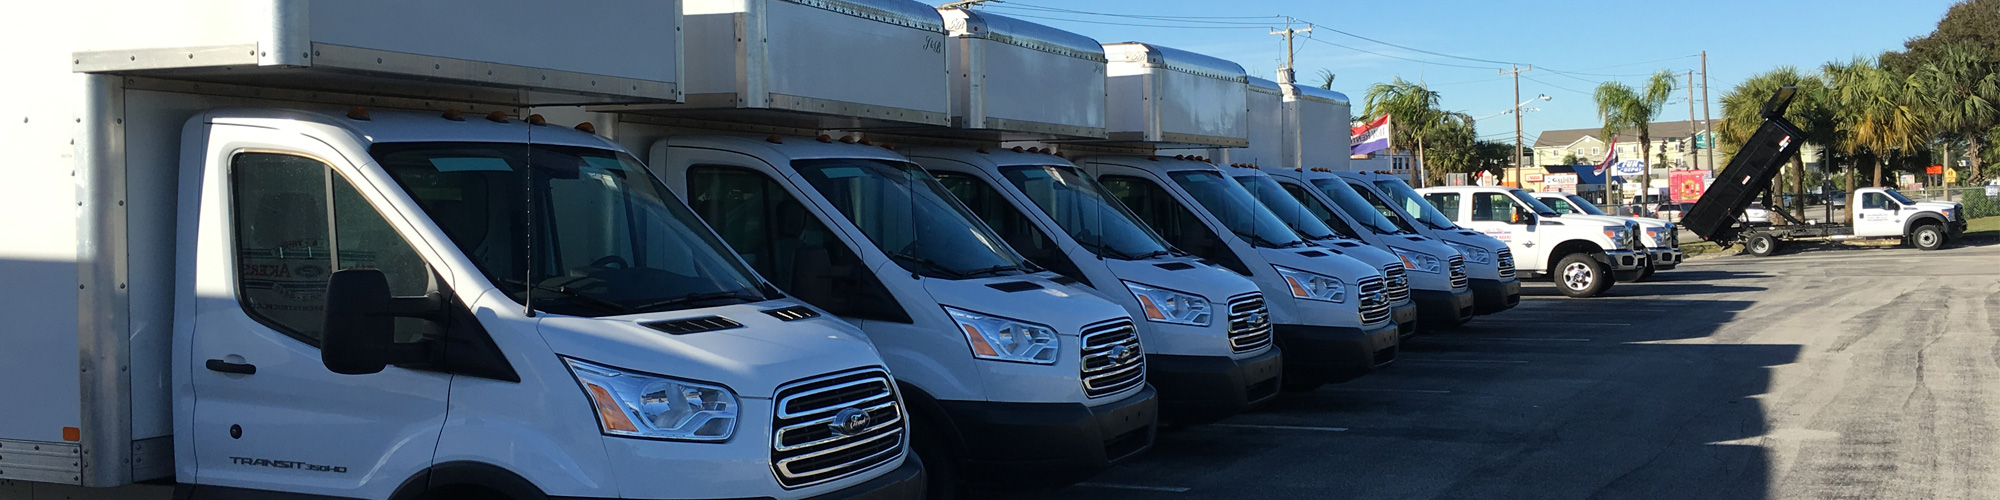 Wayne Akers Ford Truck Rental >> The Largest Selection of Ford Rental Trucks in South East Florida | Akers Rent A Truck